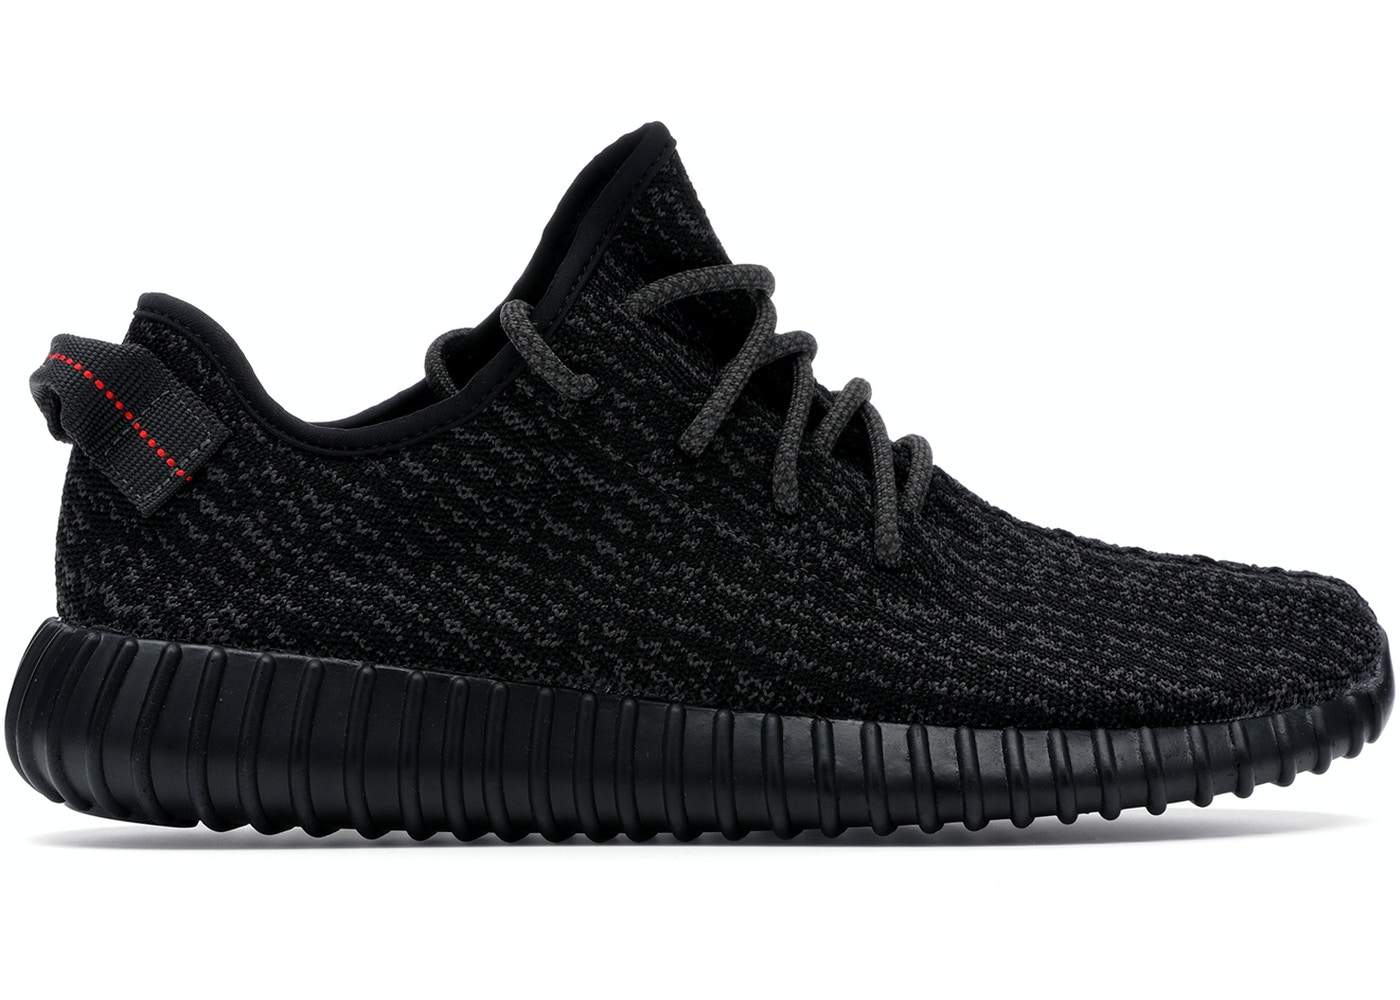 3b2c512dfdcf7 adidas Yeezy Boost 350 Pirate Black (2016) - BB5350